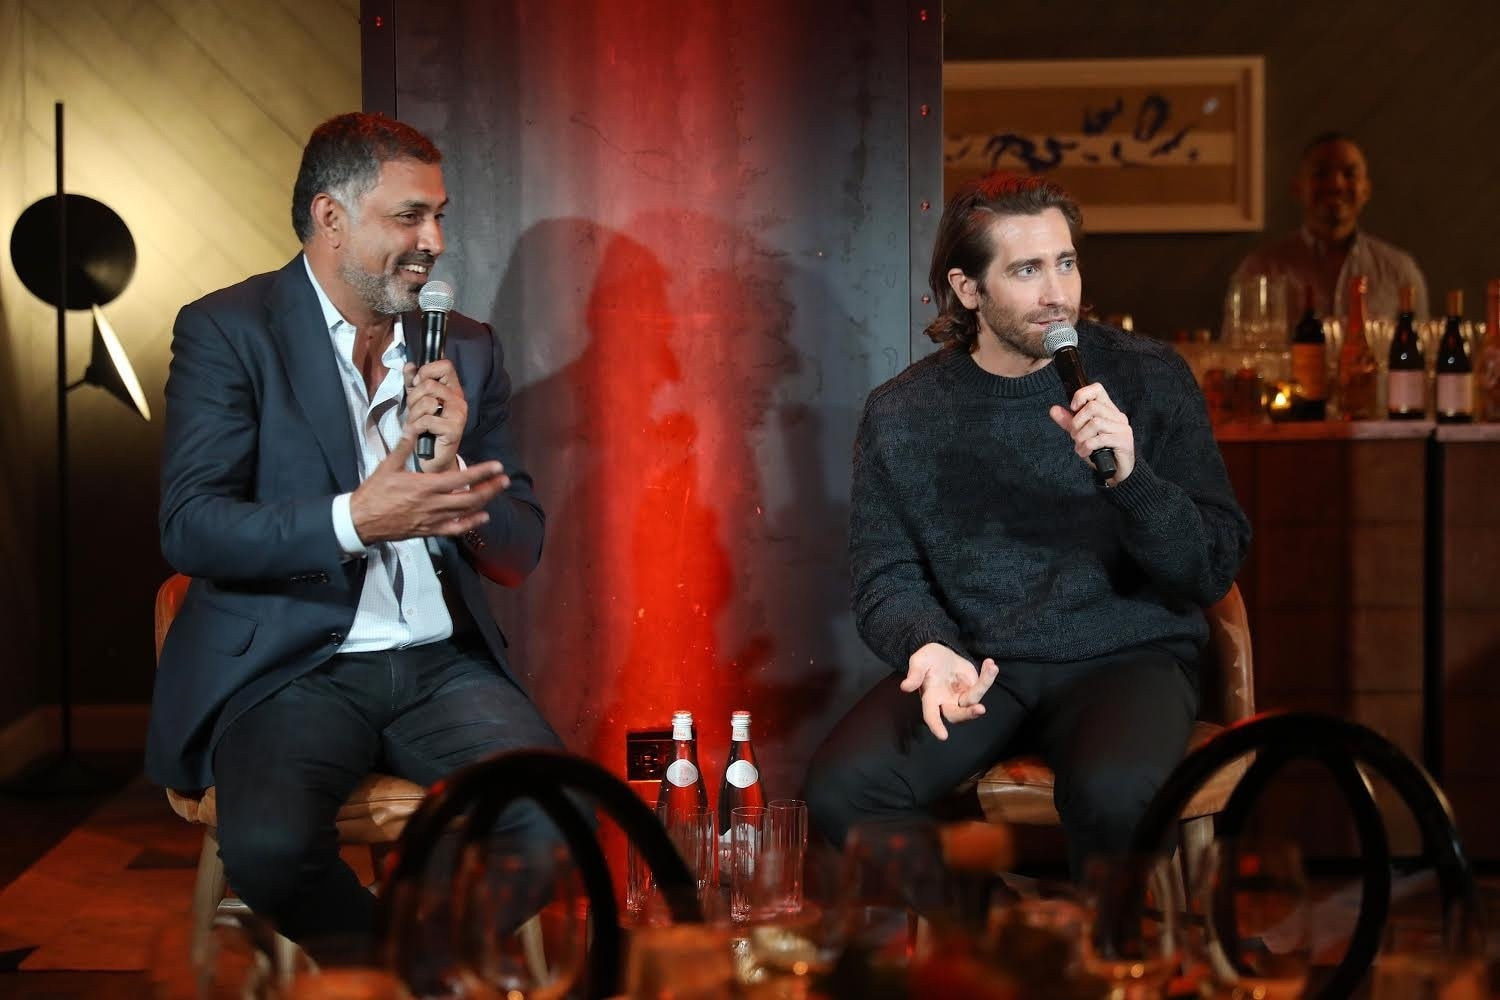 Palo Alto Networks CEO and chairman Nikesh Arora speaks with actor Jake Gyllenhaal at the Palo Alto Networks Experience.